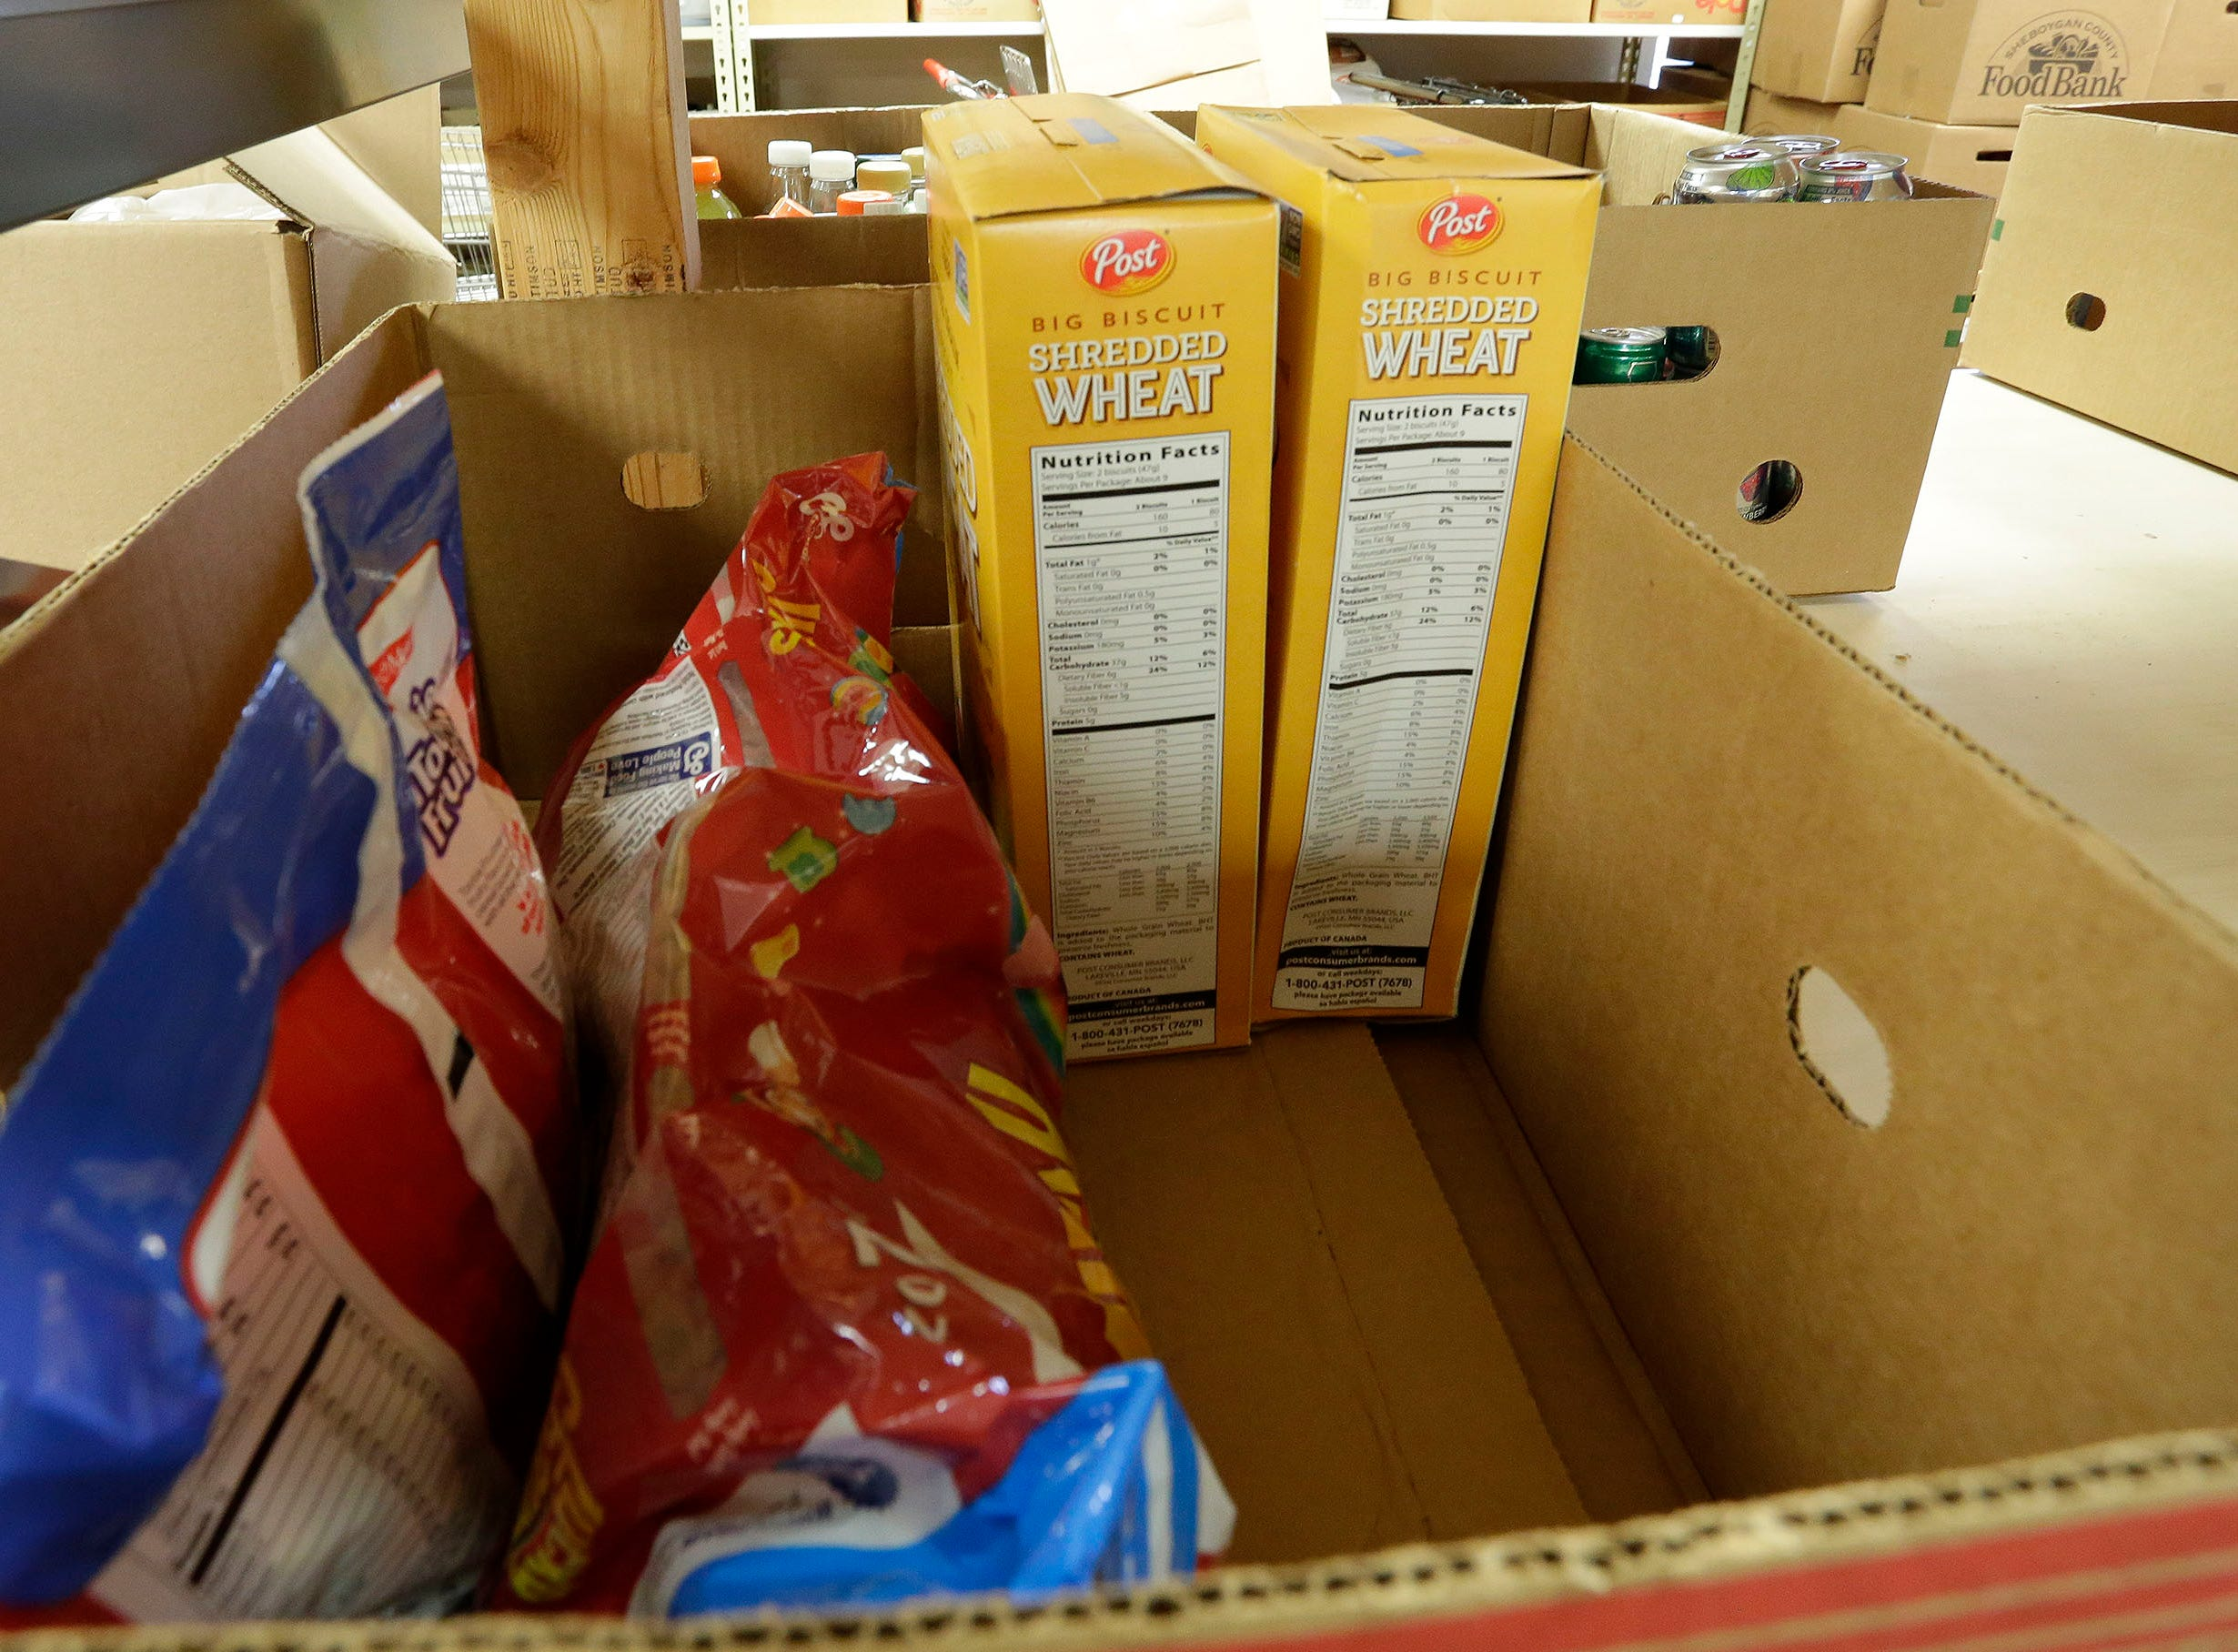 Dry goods at the Salvation Army Food Pantry as seen, Thursday, September 20, 2018, in Sheboygan, Wis.